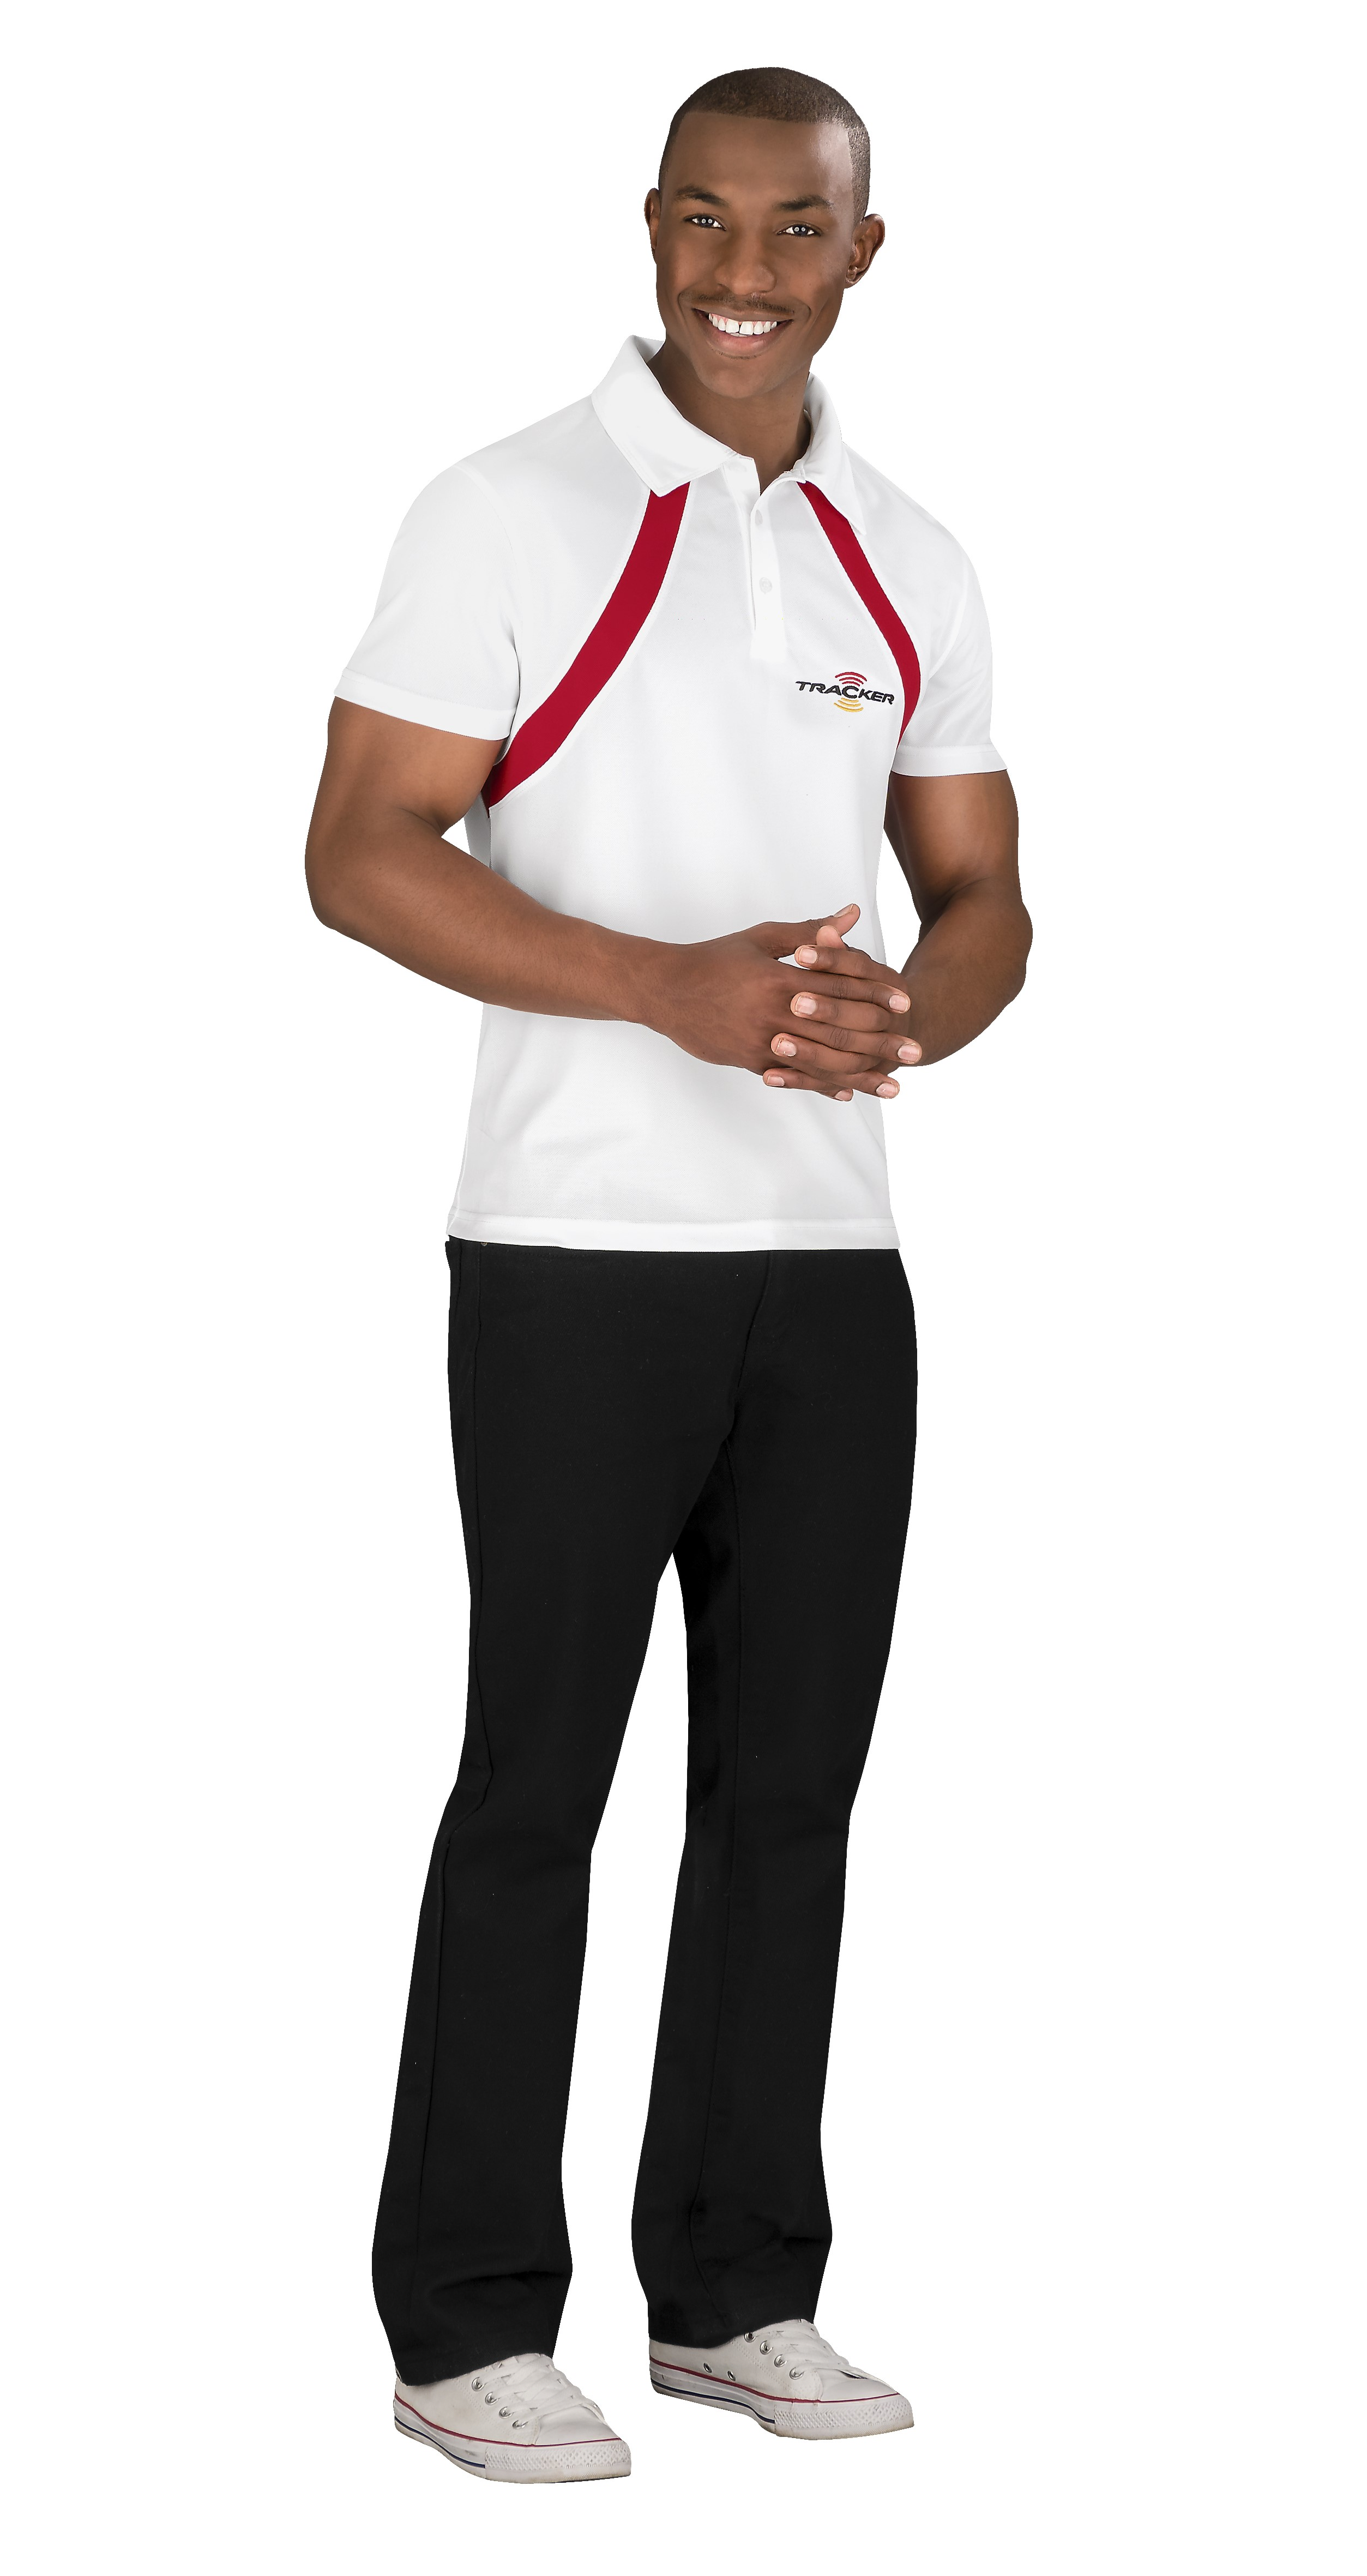 Moisture Management Golf Shirts - Golf Shirts South Africa